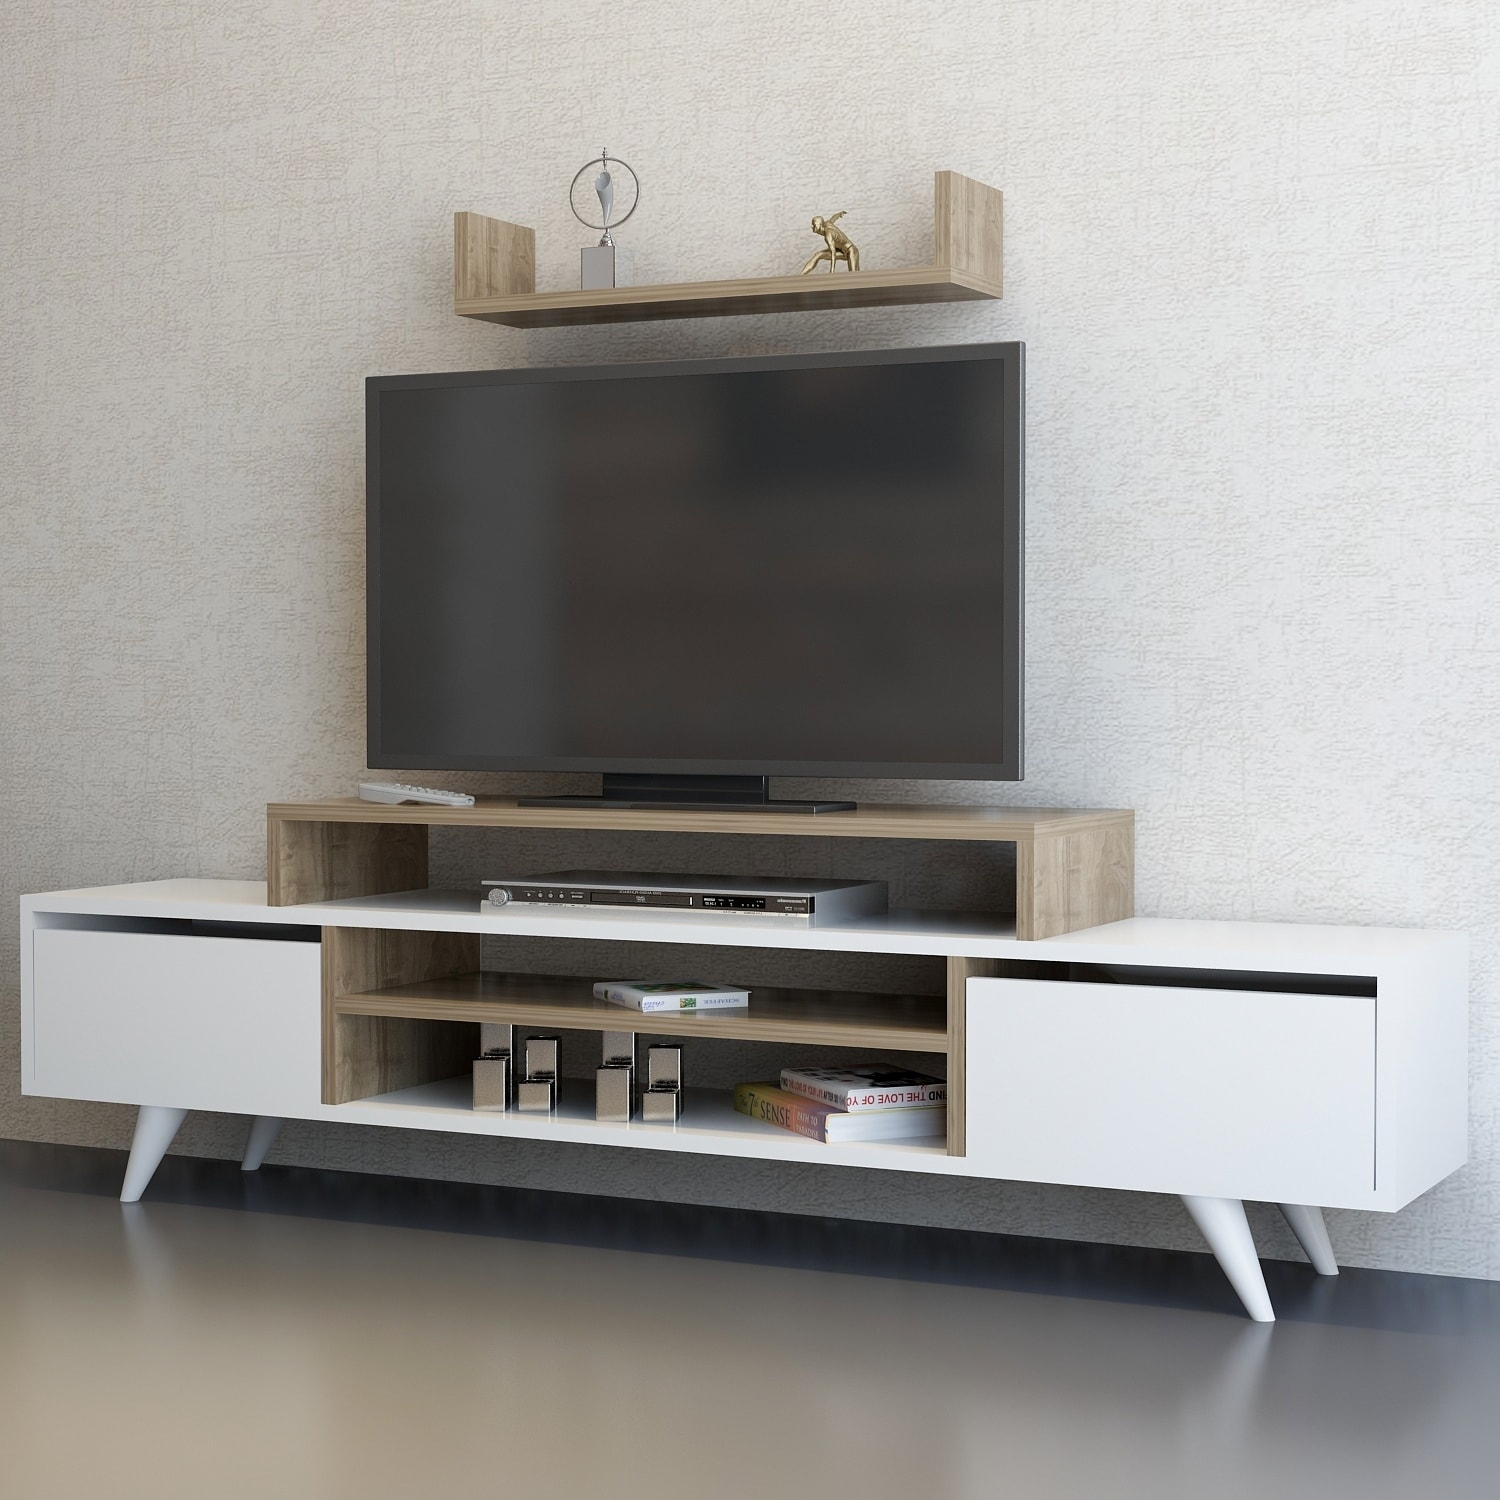 Decorotika Melanie 71 Inch Tv Stand With Open Shelves Free Shipping Today 22393225